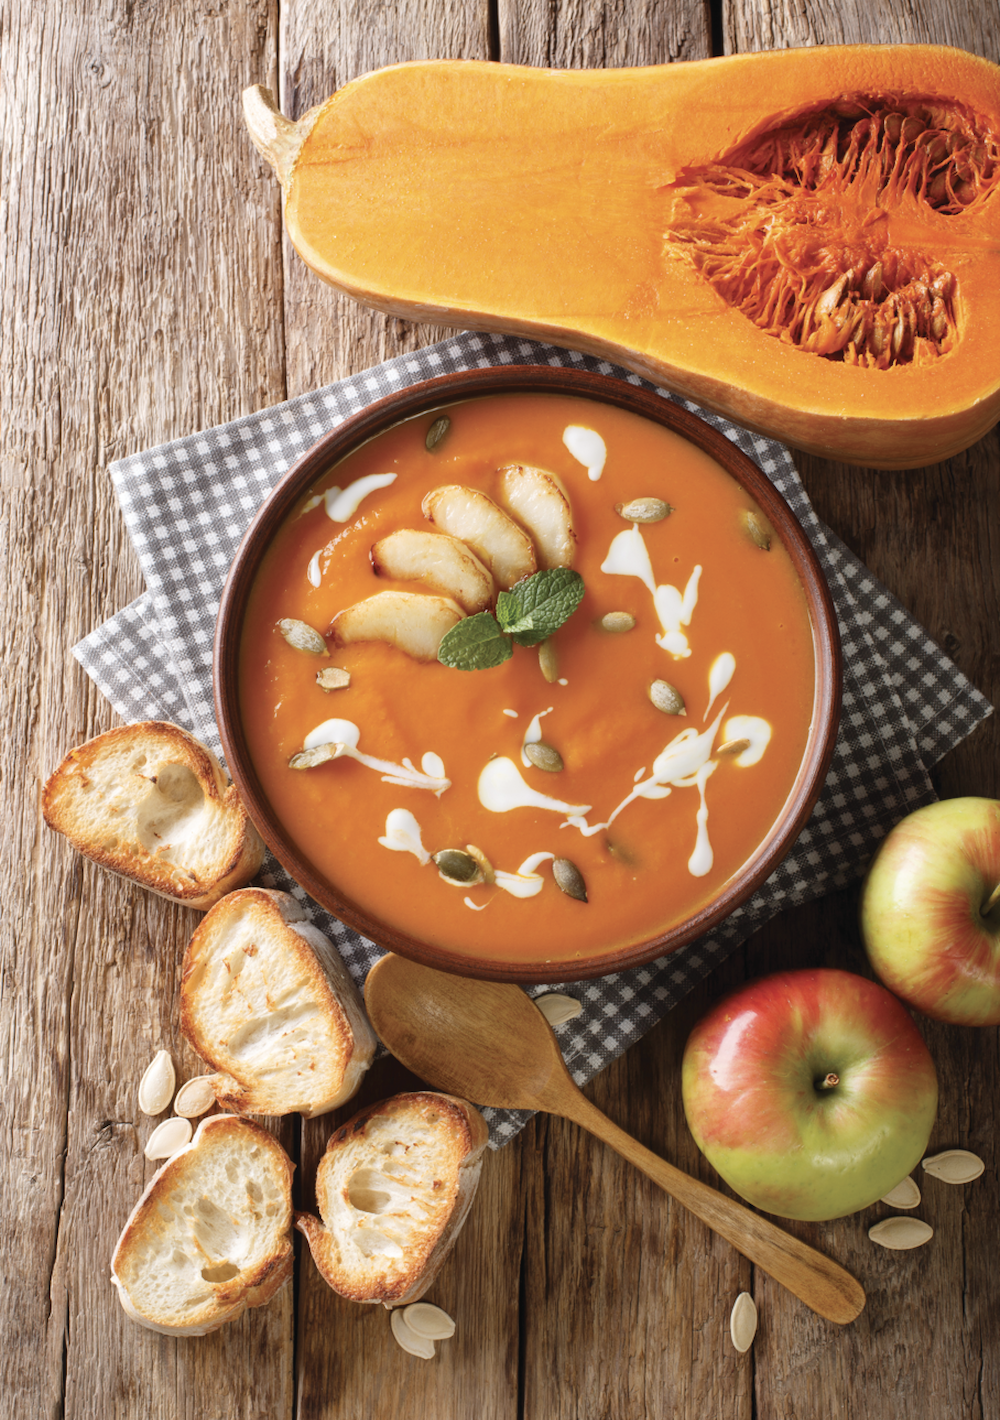 Healthy Eating Tips for October